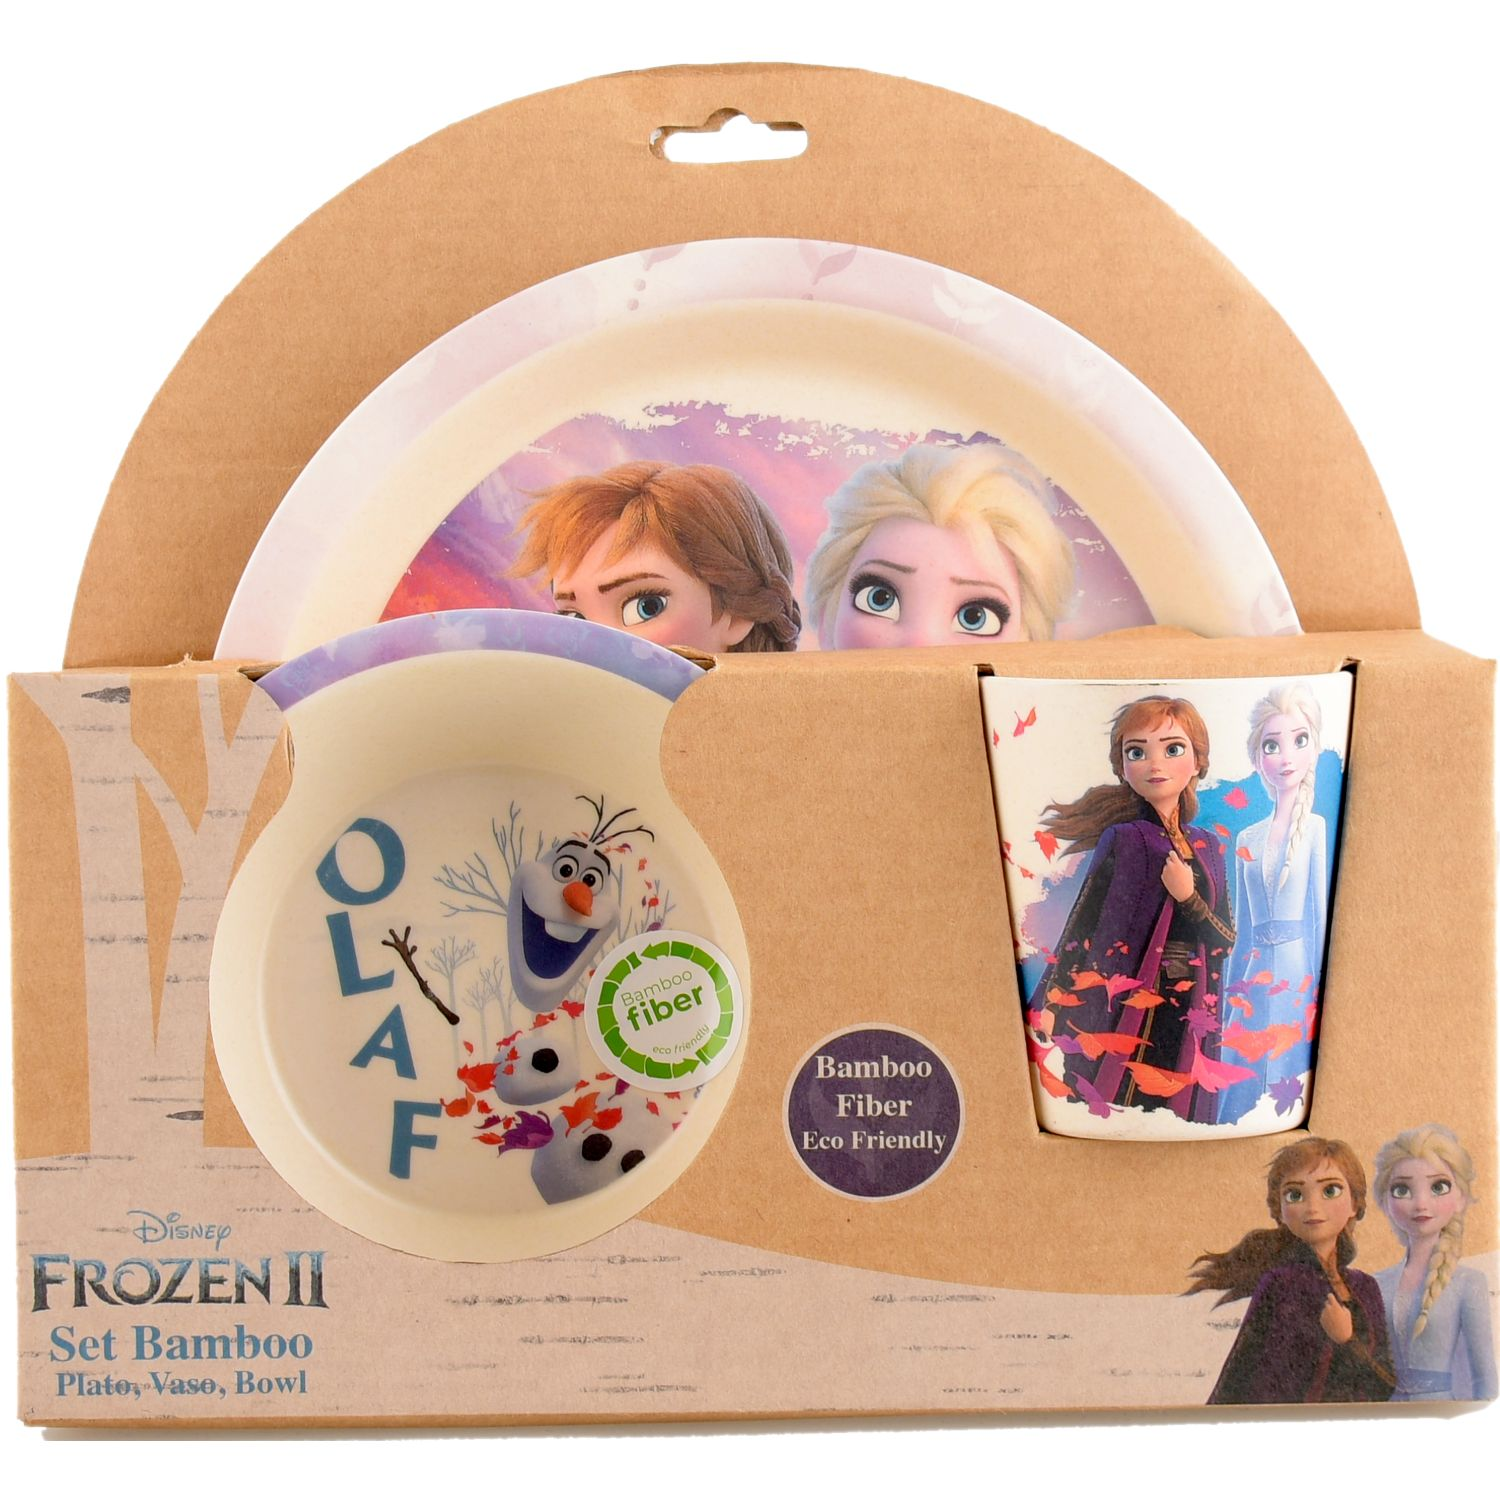 Frozen set bamboo frozen 2 Rosado platos